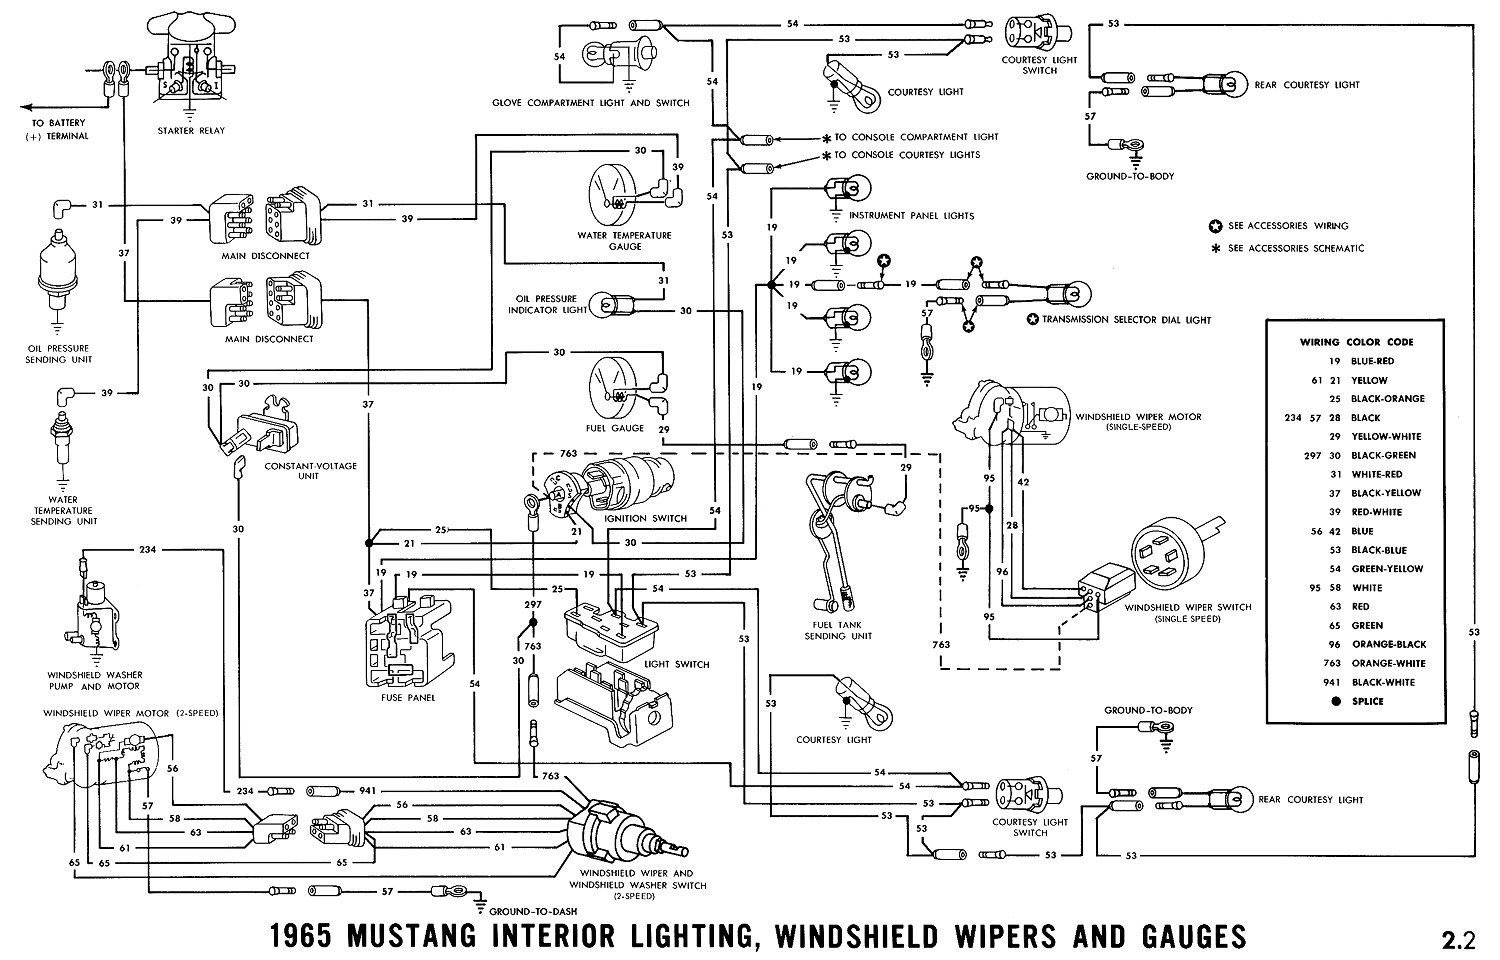 1965 mustang wiring diagrams average joe restoration rh averagejoerestoration com 65 mustang wiring diagram manual 65 mustang convertible top wiring diagram